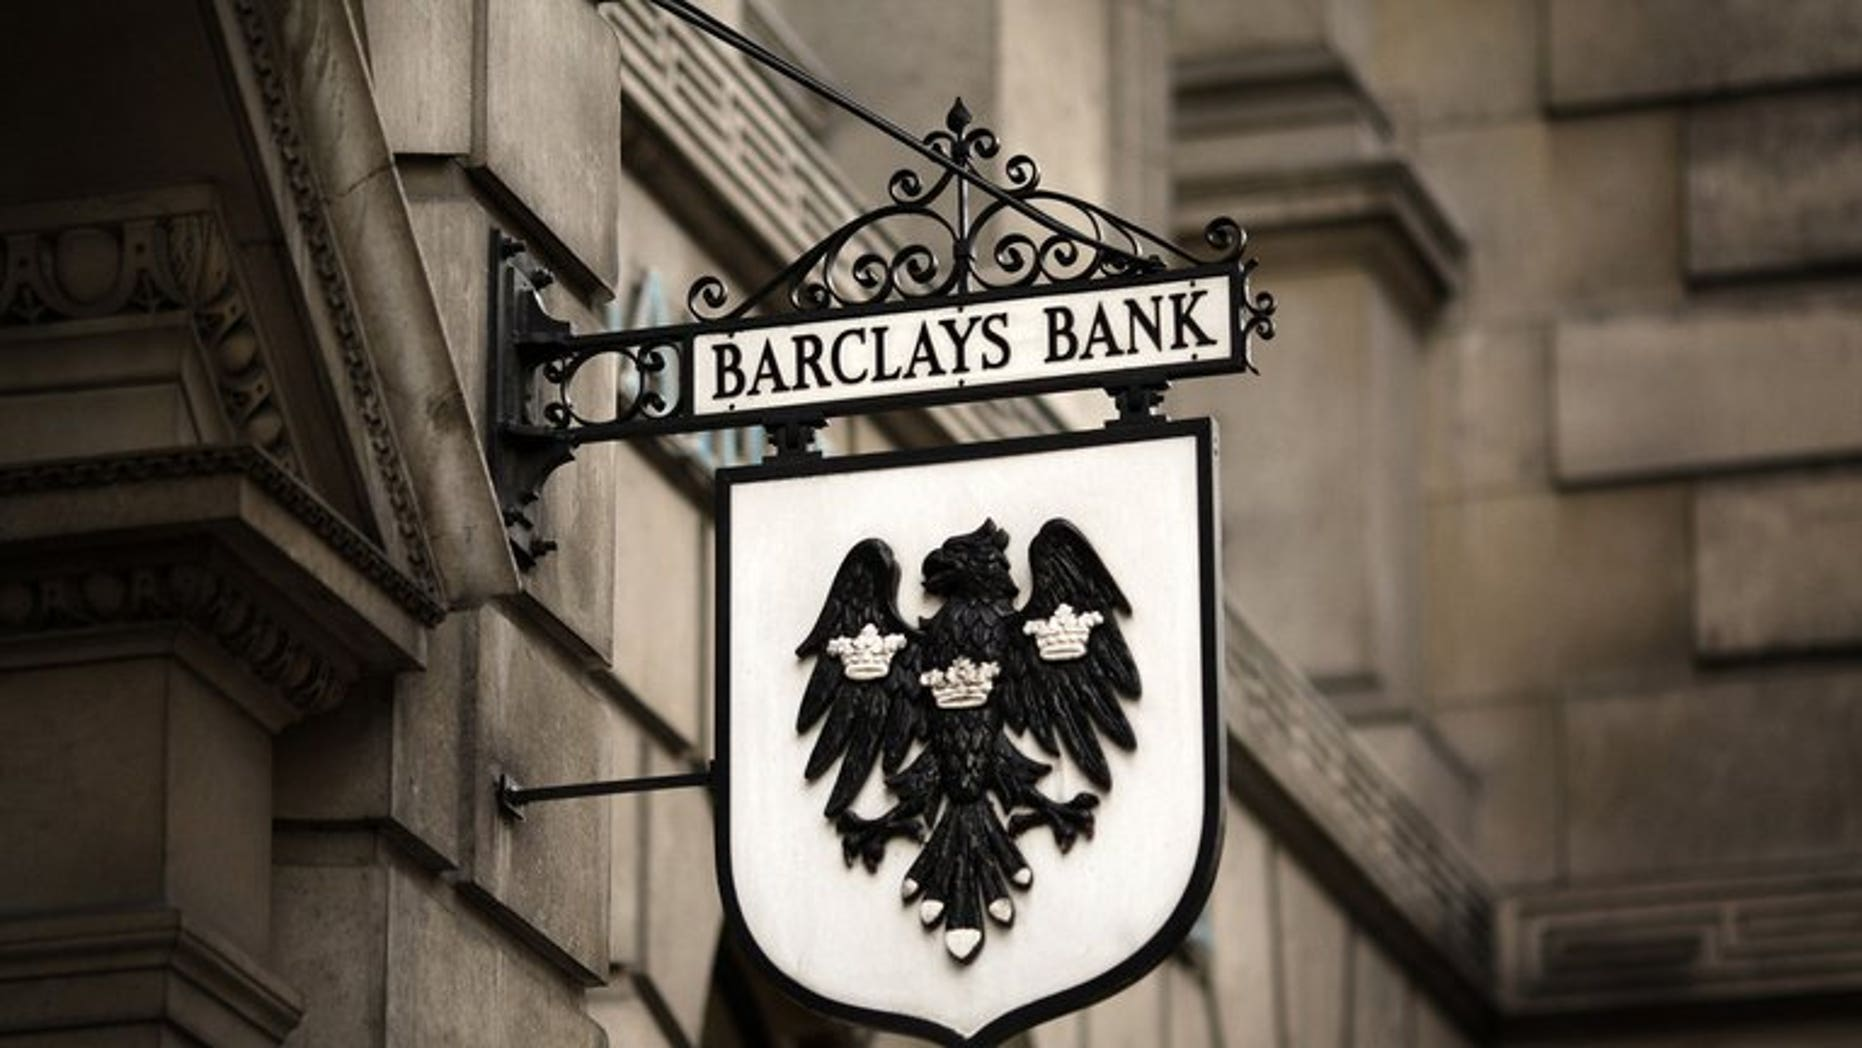 British bank Barclays has been hit by US federal regulators with a $453-million (344-million-euro) fine for alleged electricity price manipulation in western US markets, a charge which the scandal-hit bank denies.